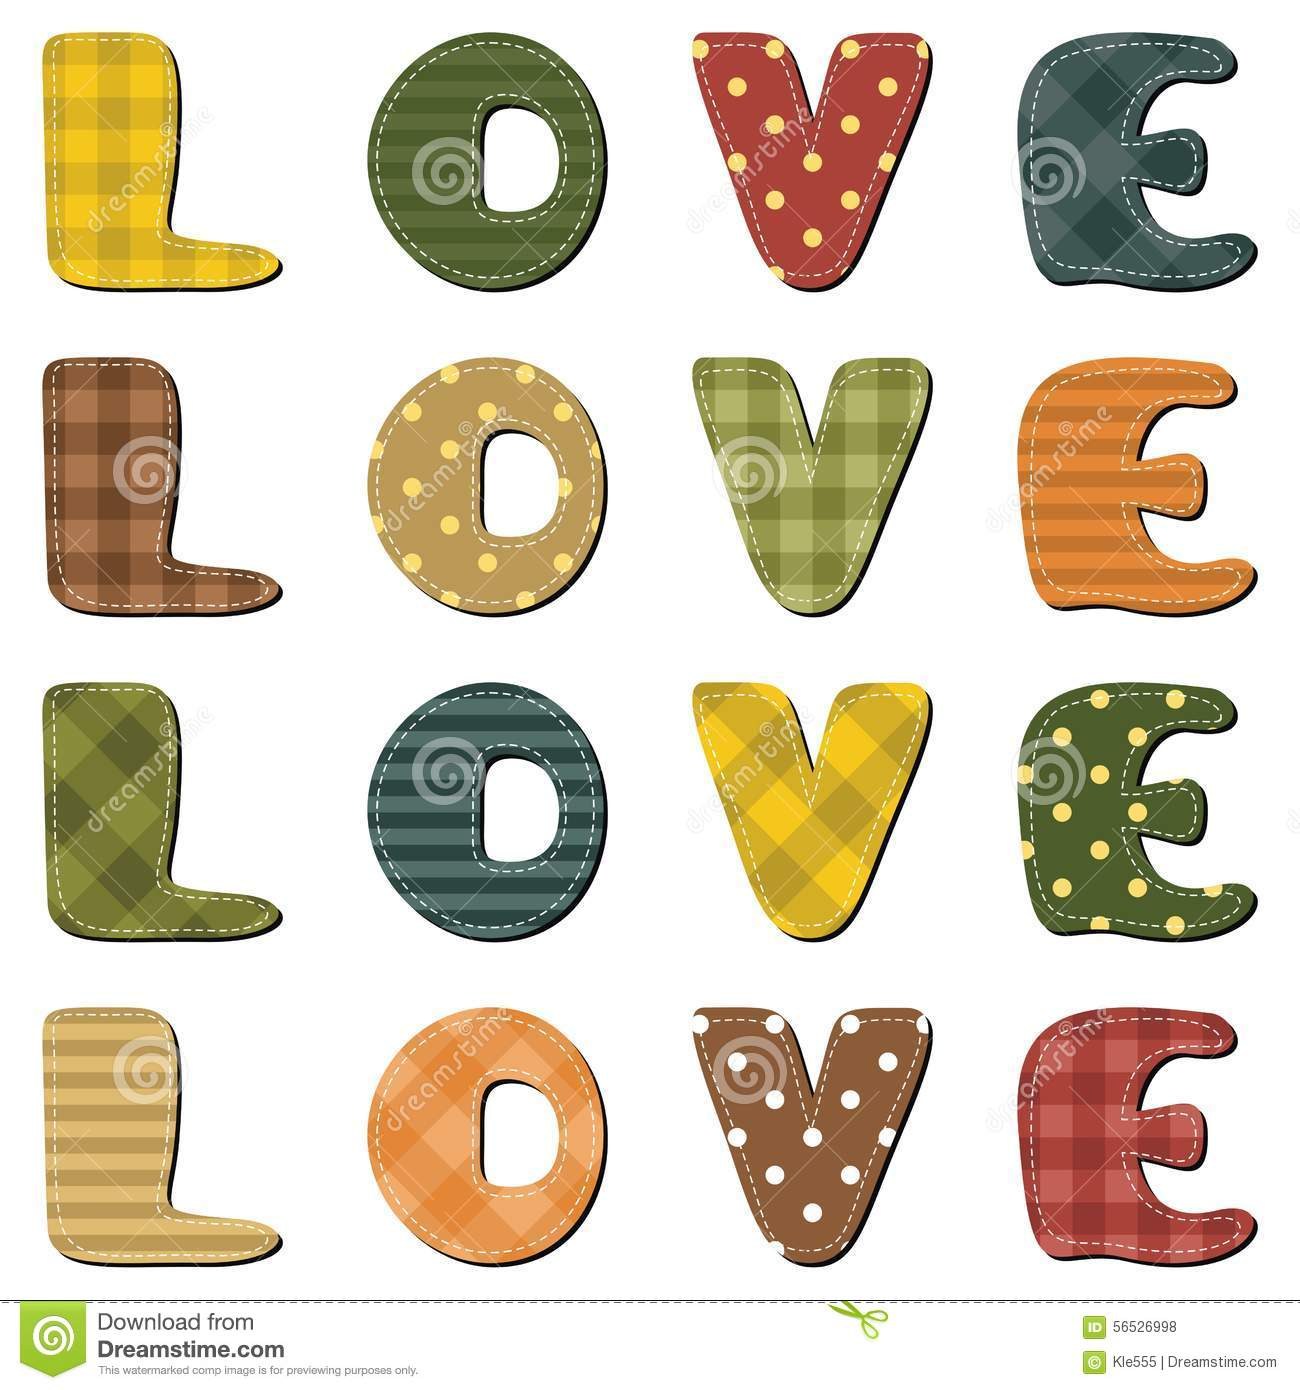 How to scrapbook letters - Love World Wirh Scrapbook Letters